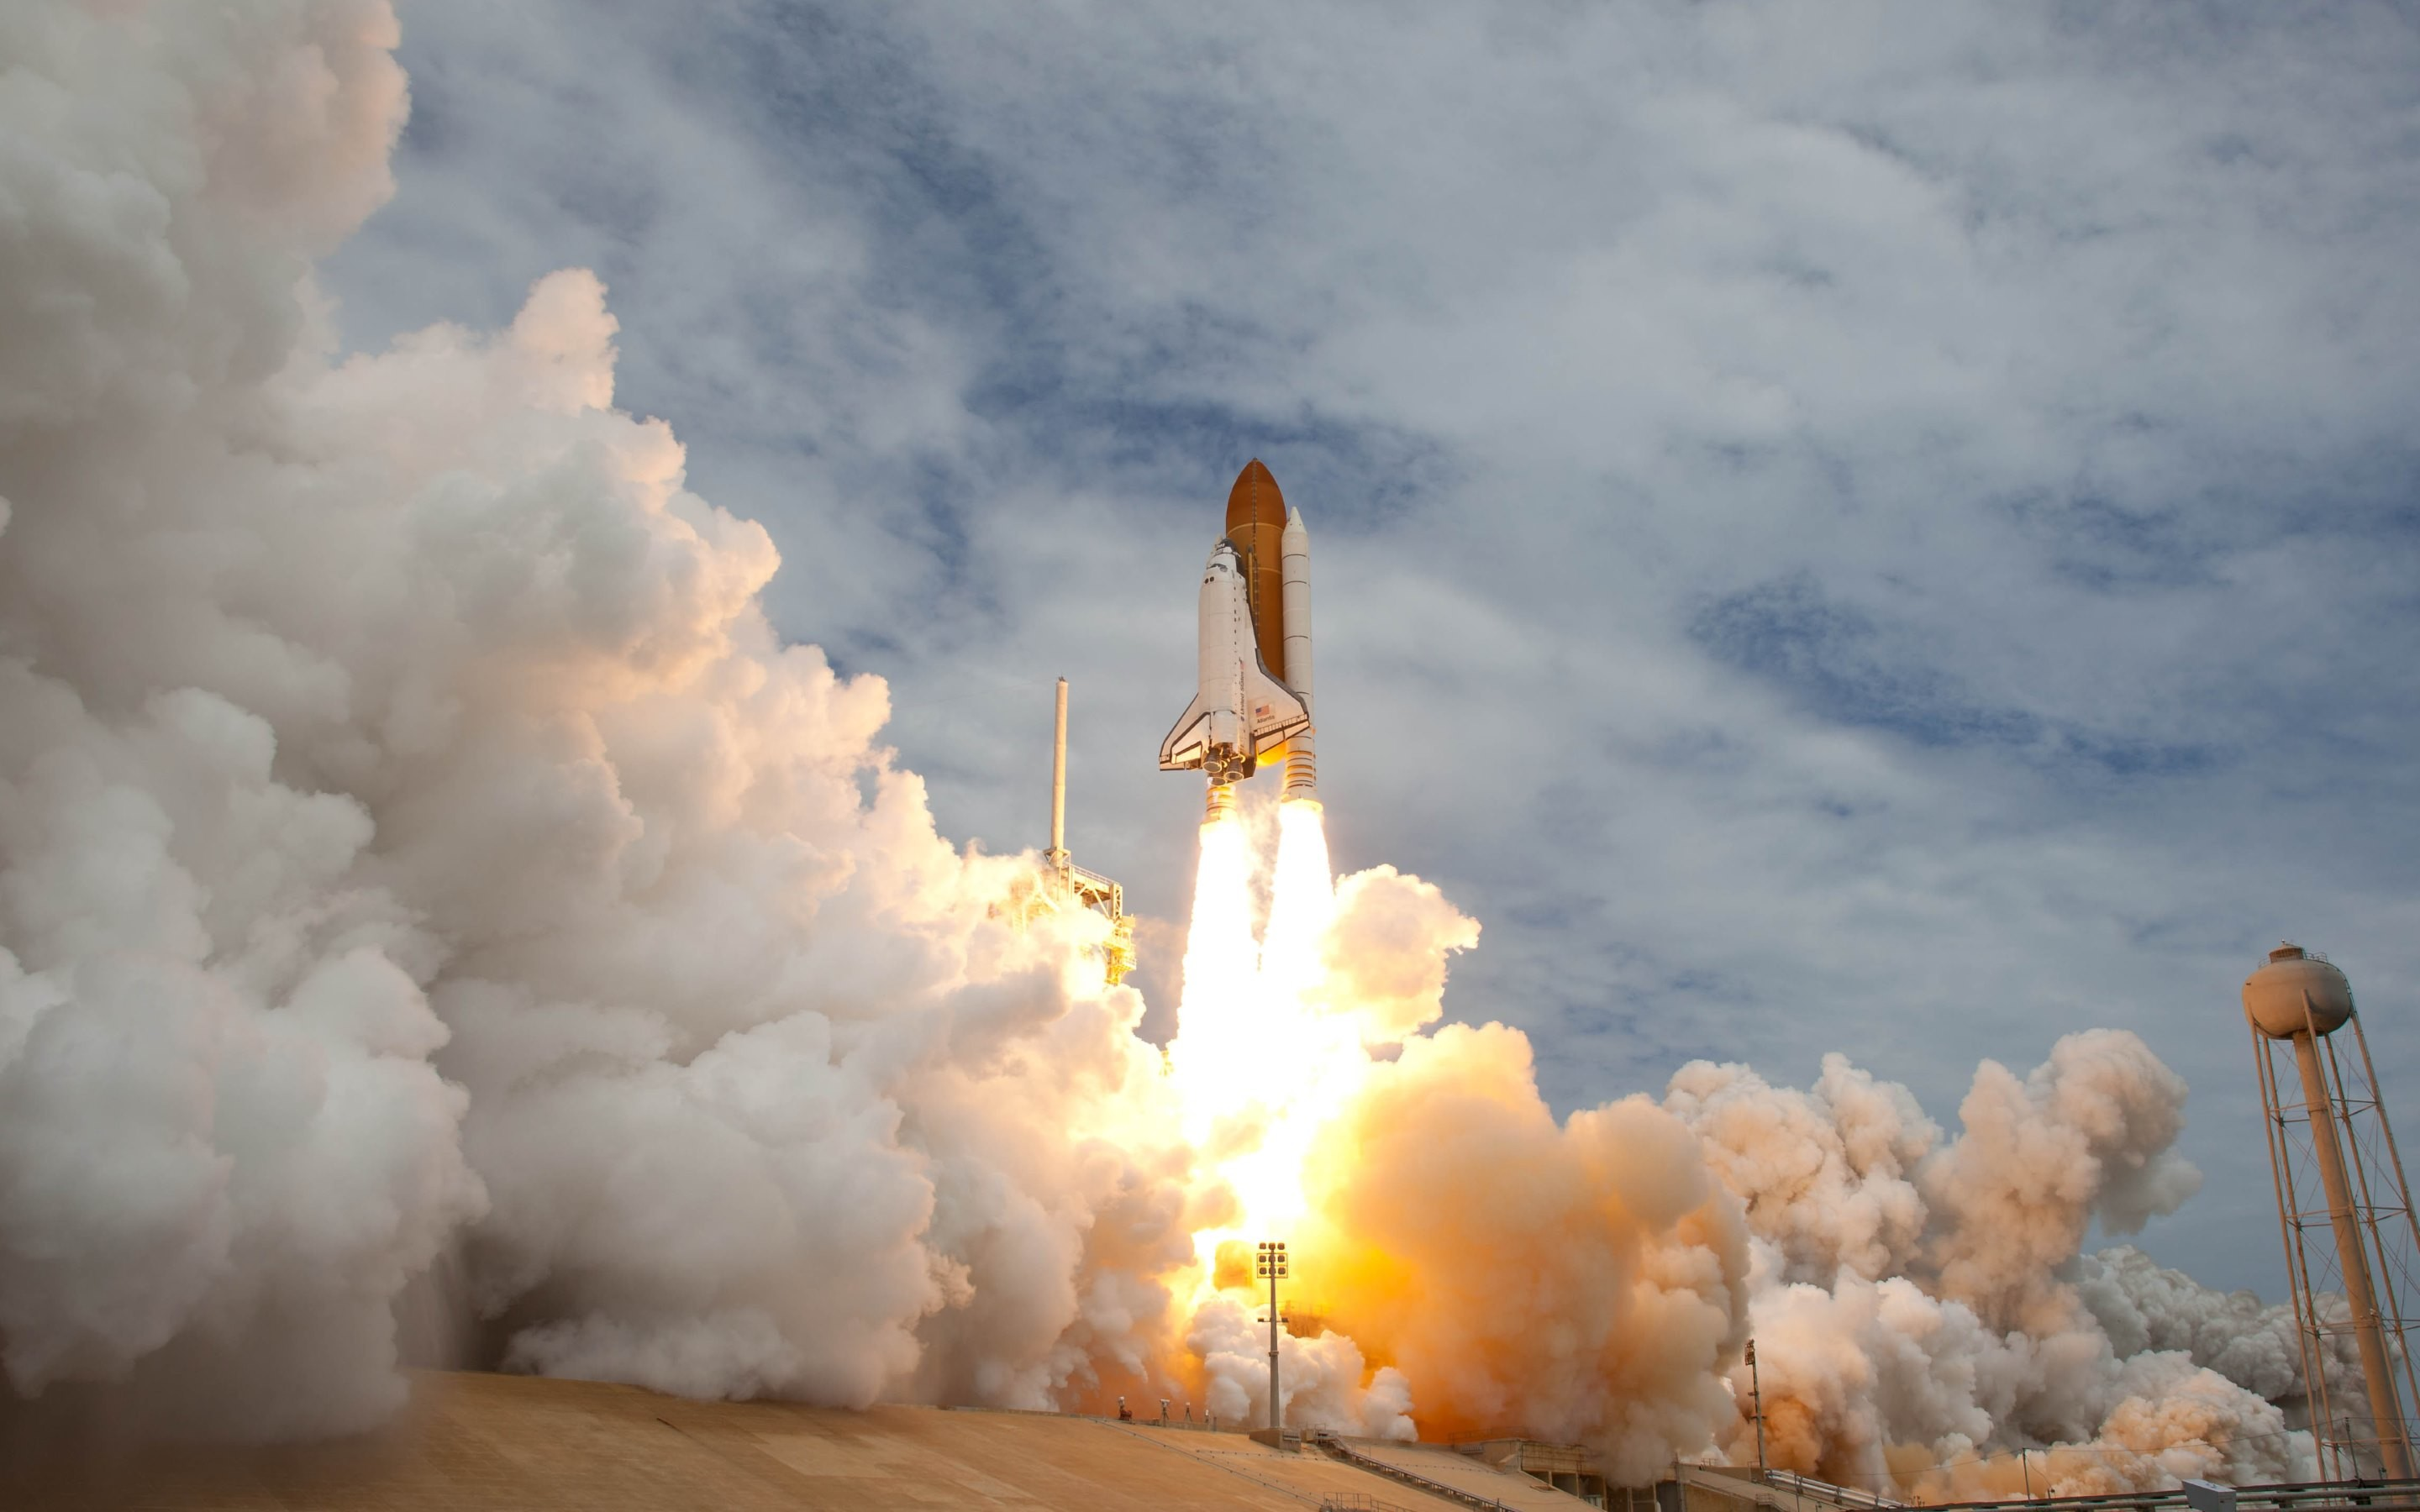 2880x1800 Atlantis, Endeavour and Discovery shuttles are all featured in these 4  pictures by courtesy of NASA · Check them to see who's your favorites and  download ...